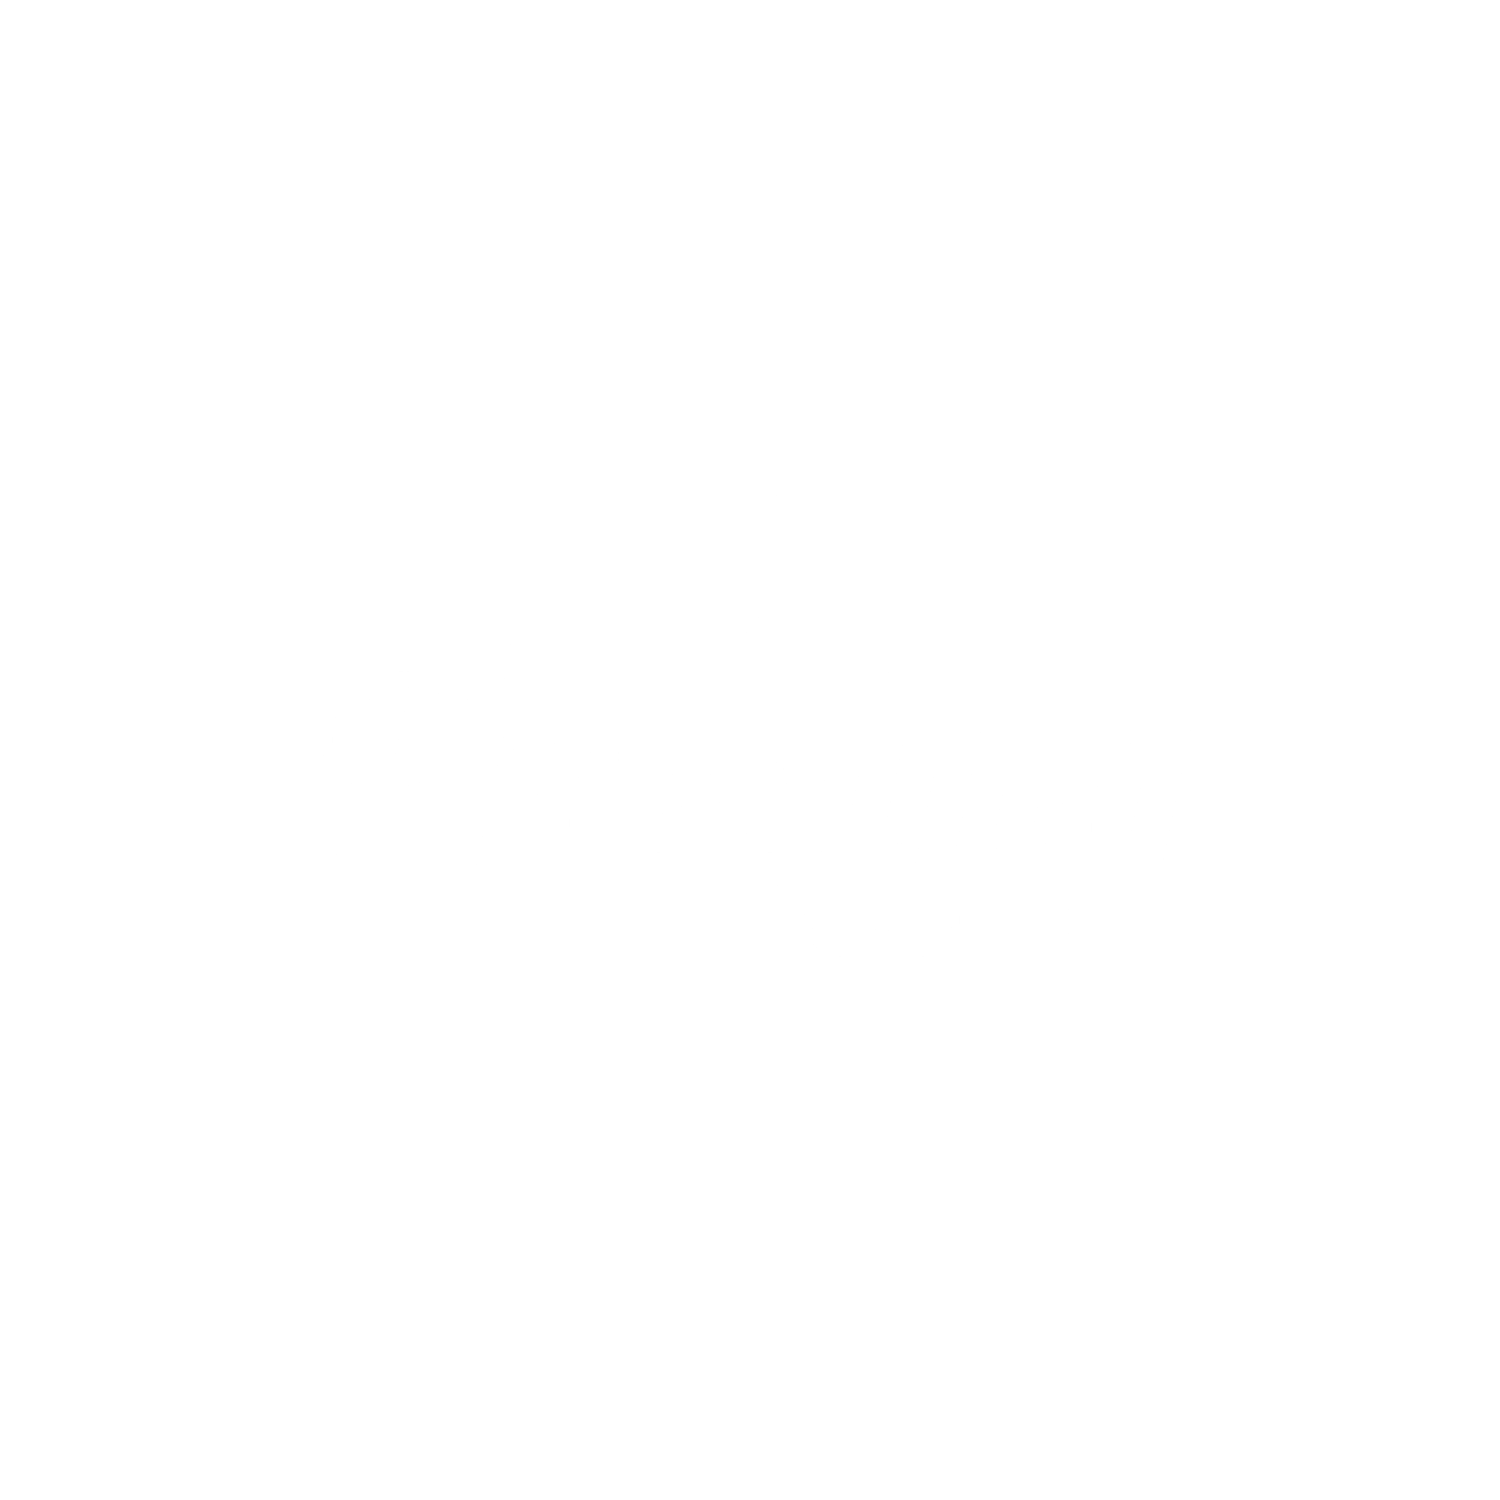 The Pressing Room